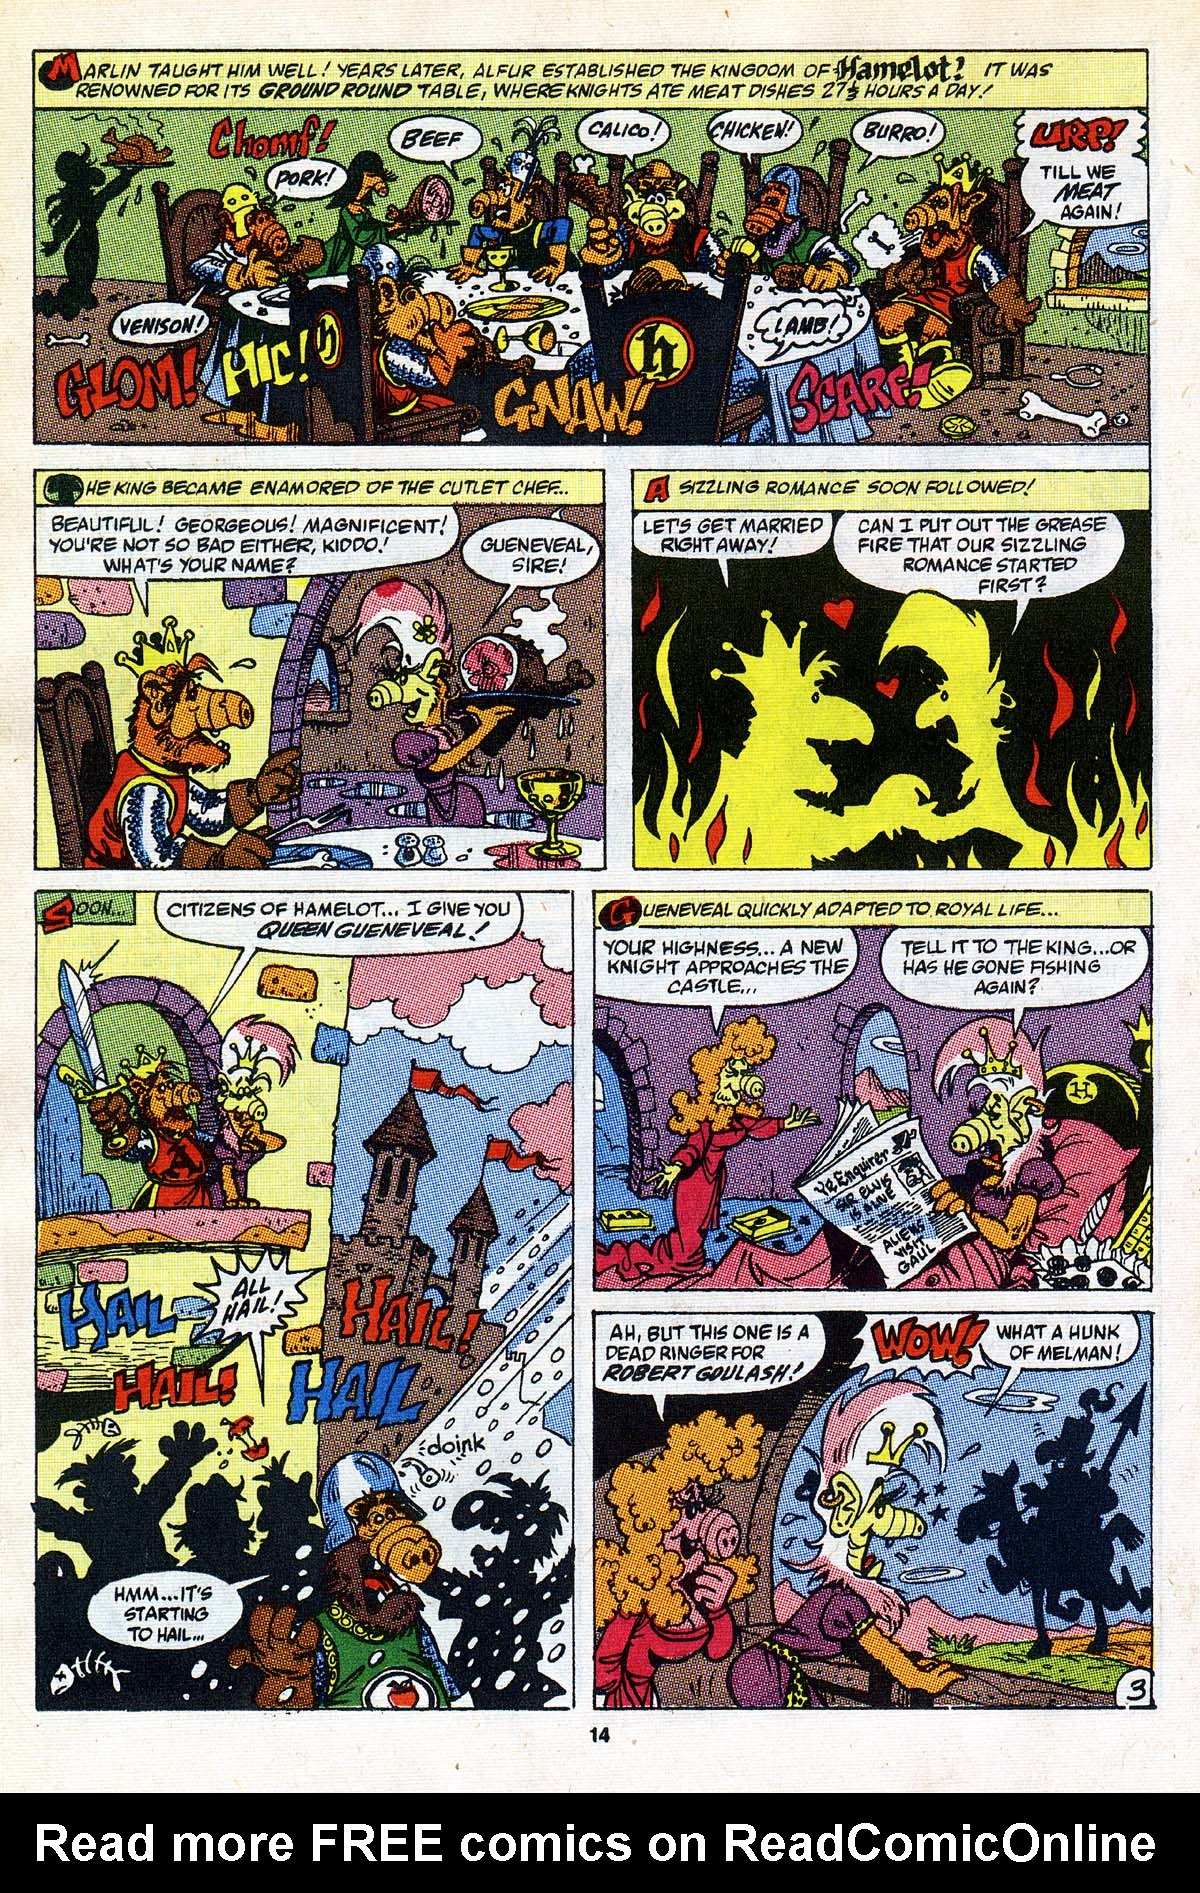 Read online ALF comic -  Issue #26 - 13